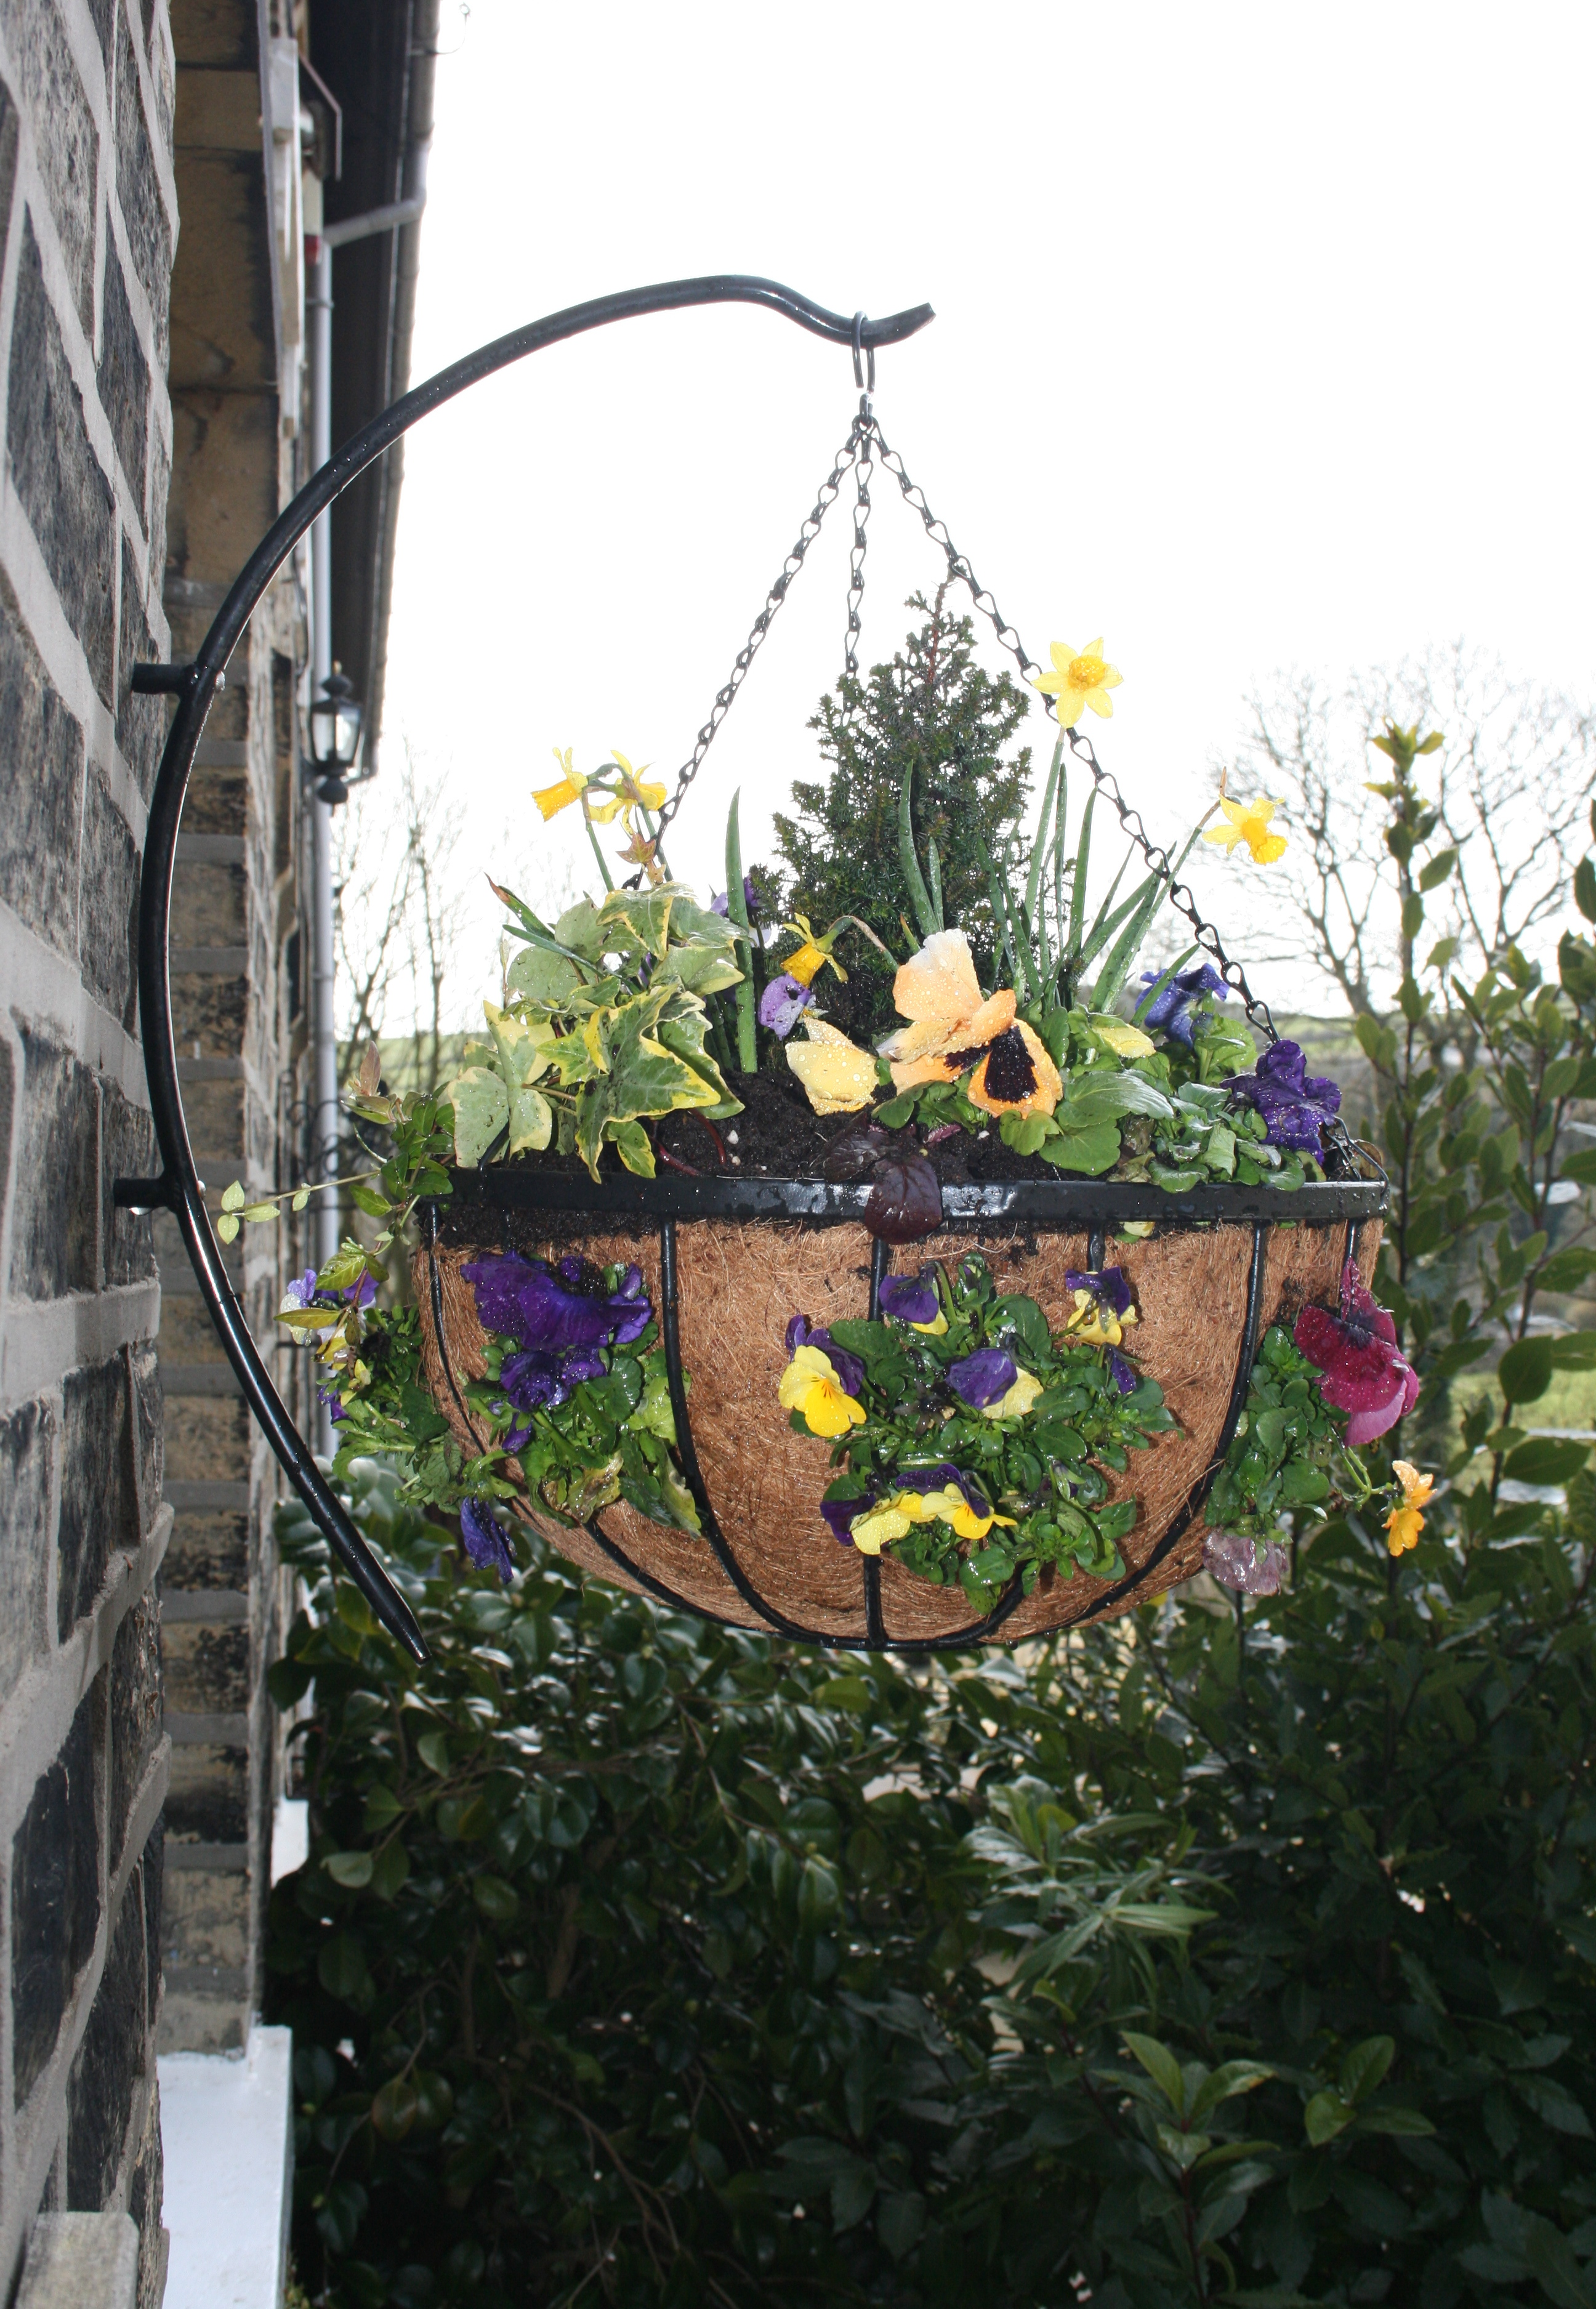 How to plant hanging baskets garden features ideas for Hanging garden designs